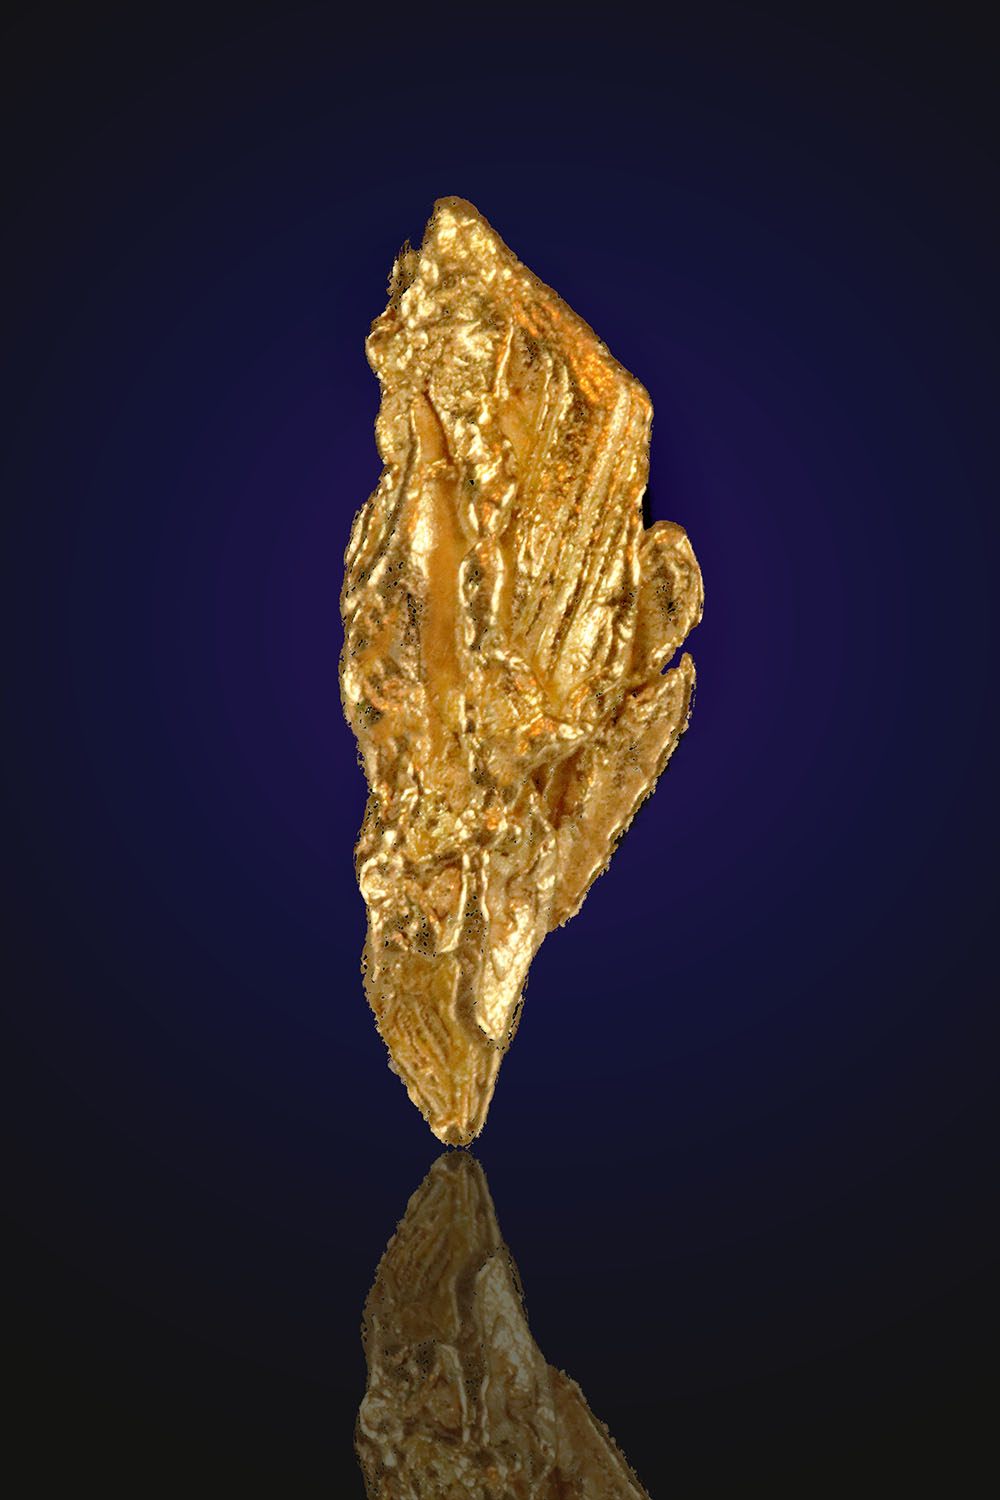 Striated Feather form - Natural Alaska Gold Nugget